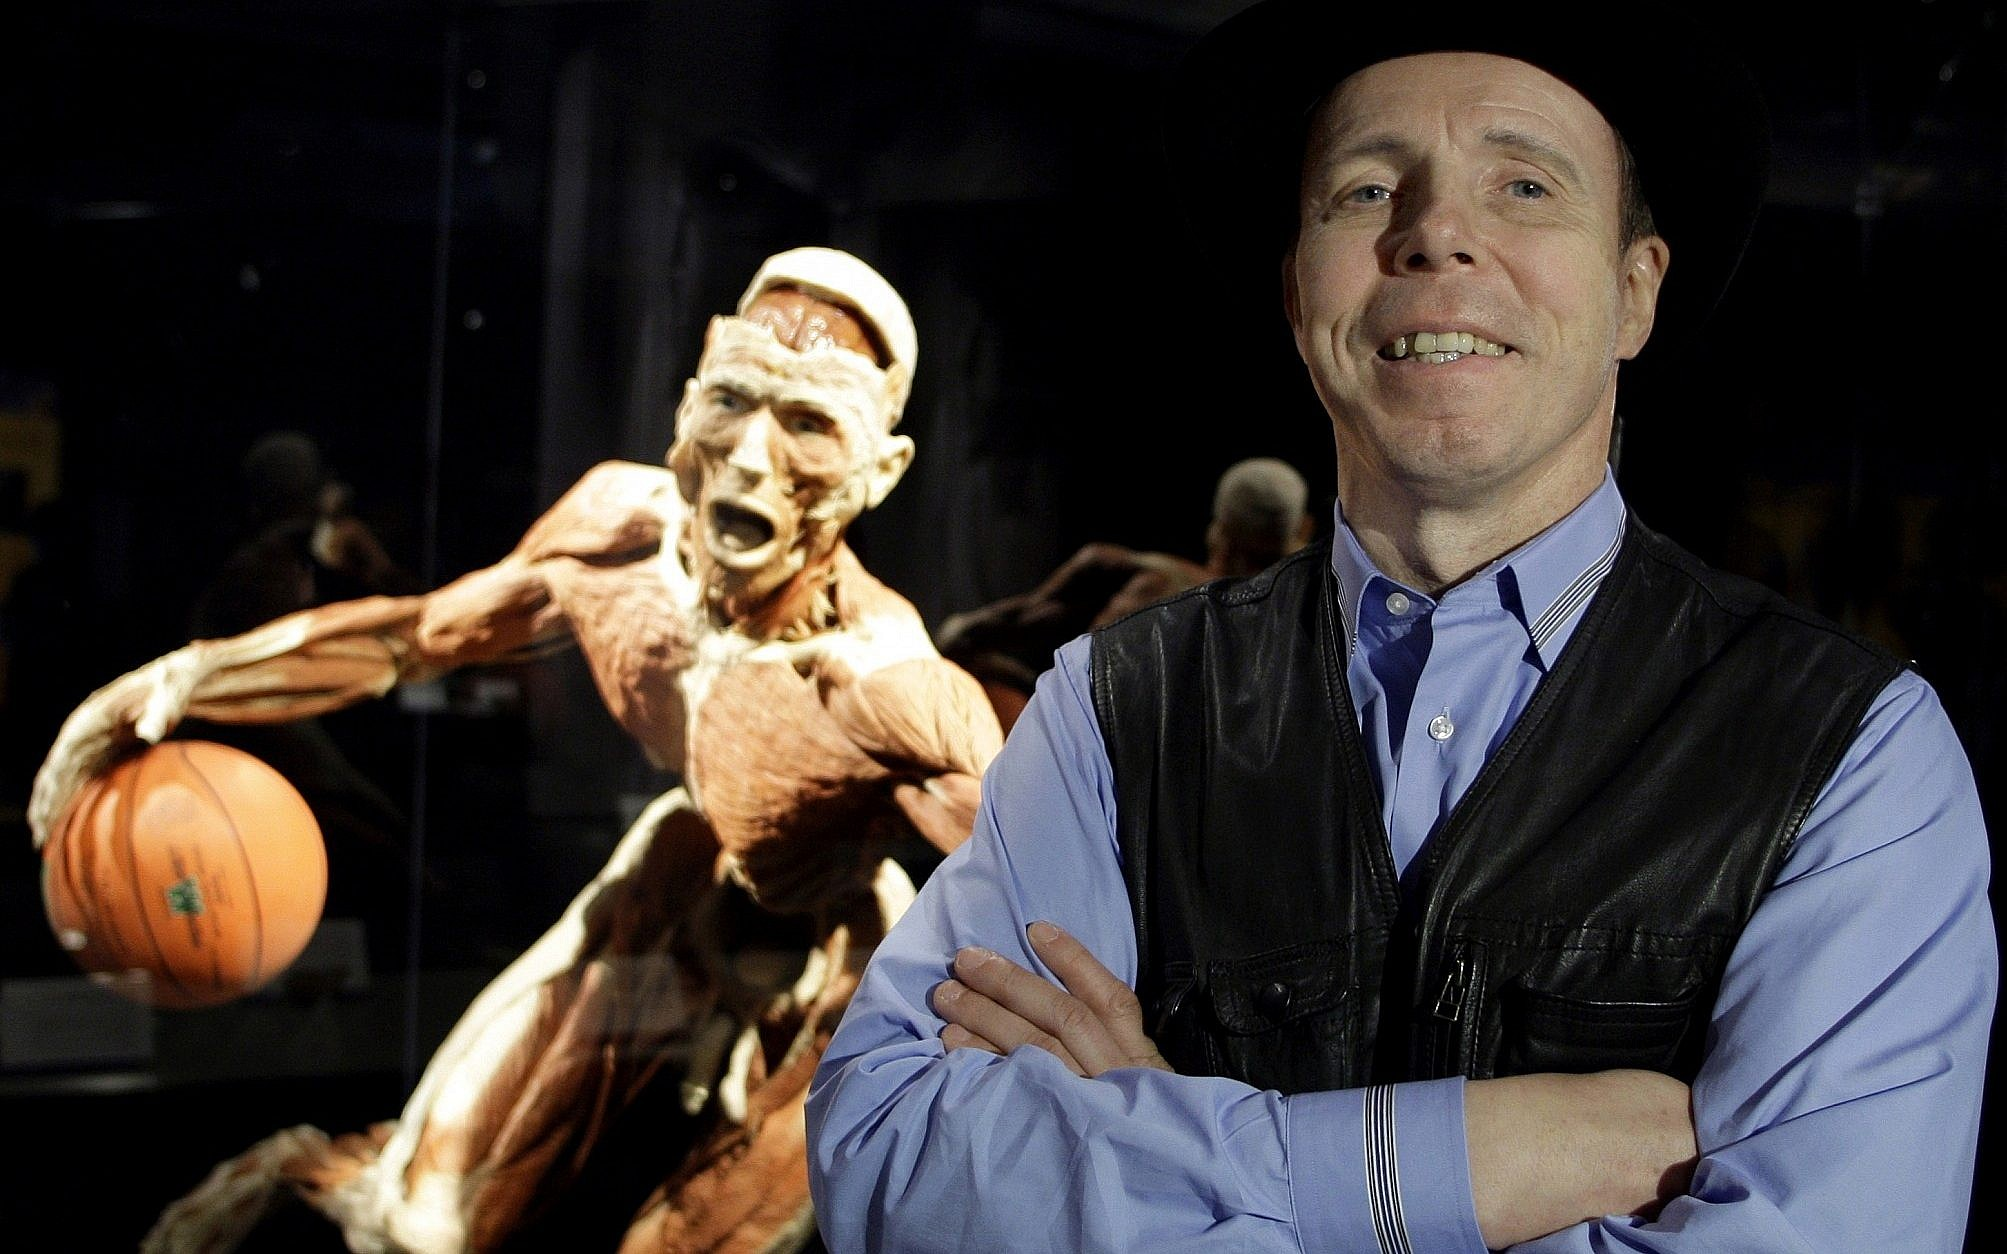 Body Worlds Creator Asks To Become Part Of Exhibit After Death The Times Of Israel